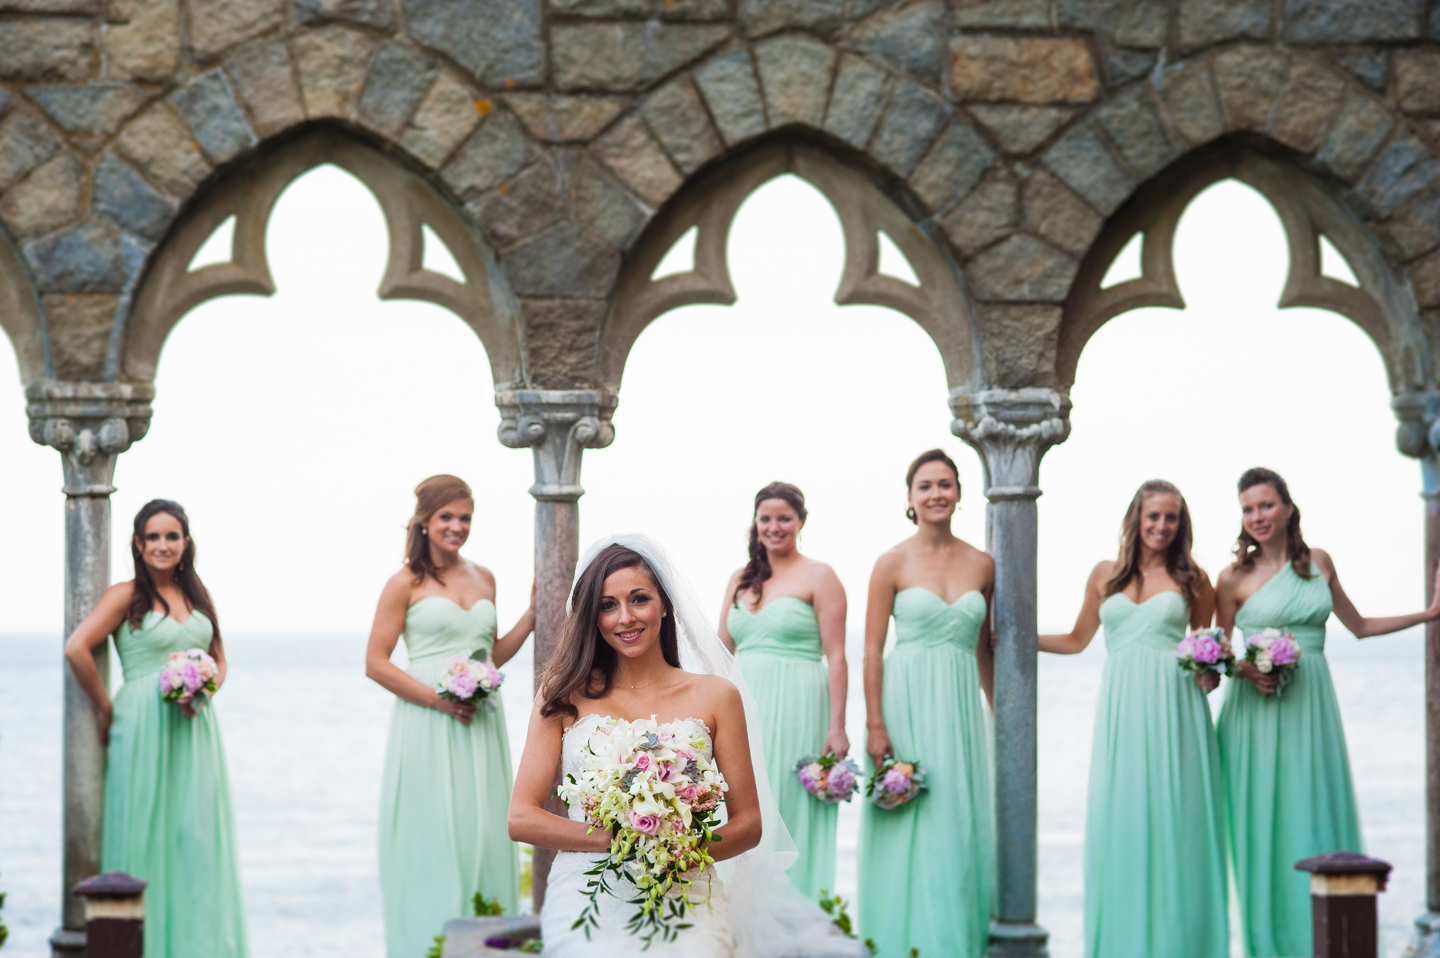 Beautiful bride and her bridesmaids pose for a portrait  by some stone arches at Hammond Castle